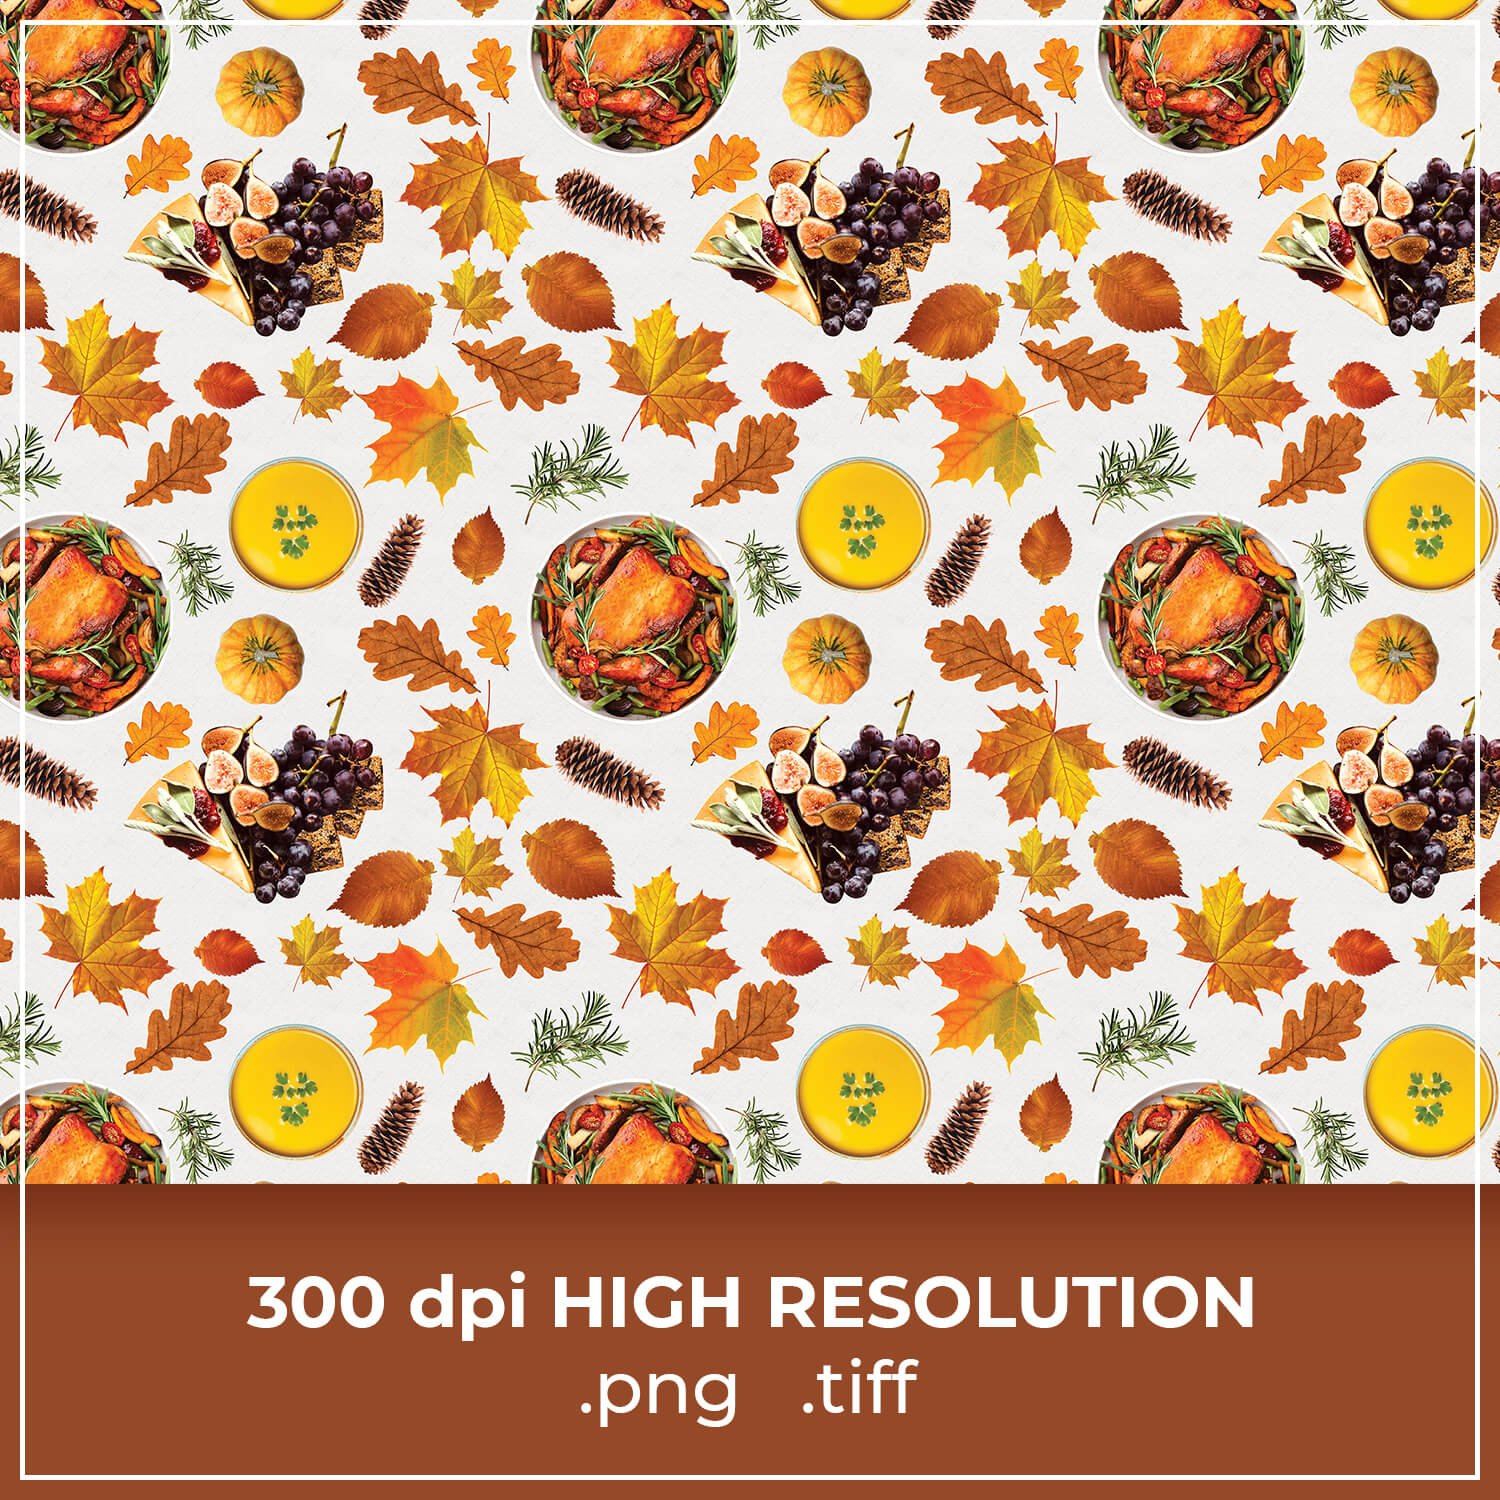 Free Thanksgiving Background Images cover image.